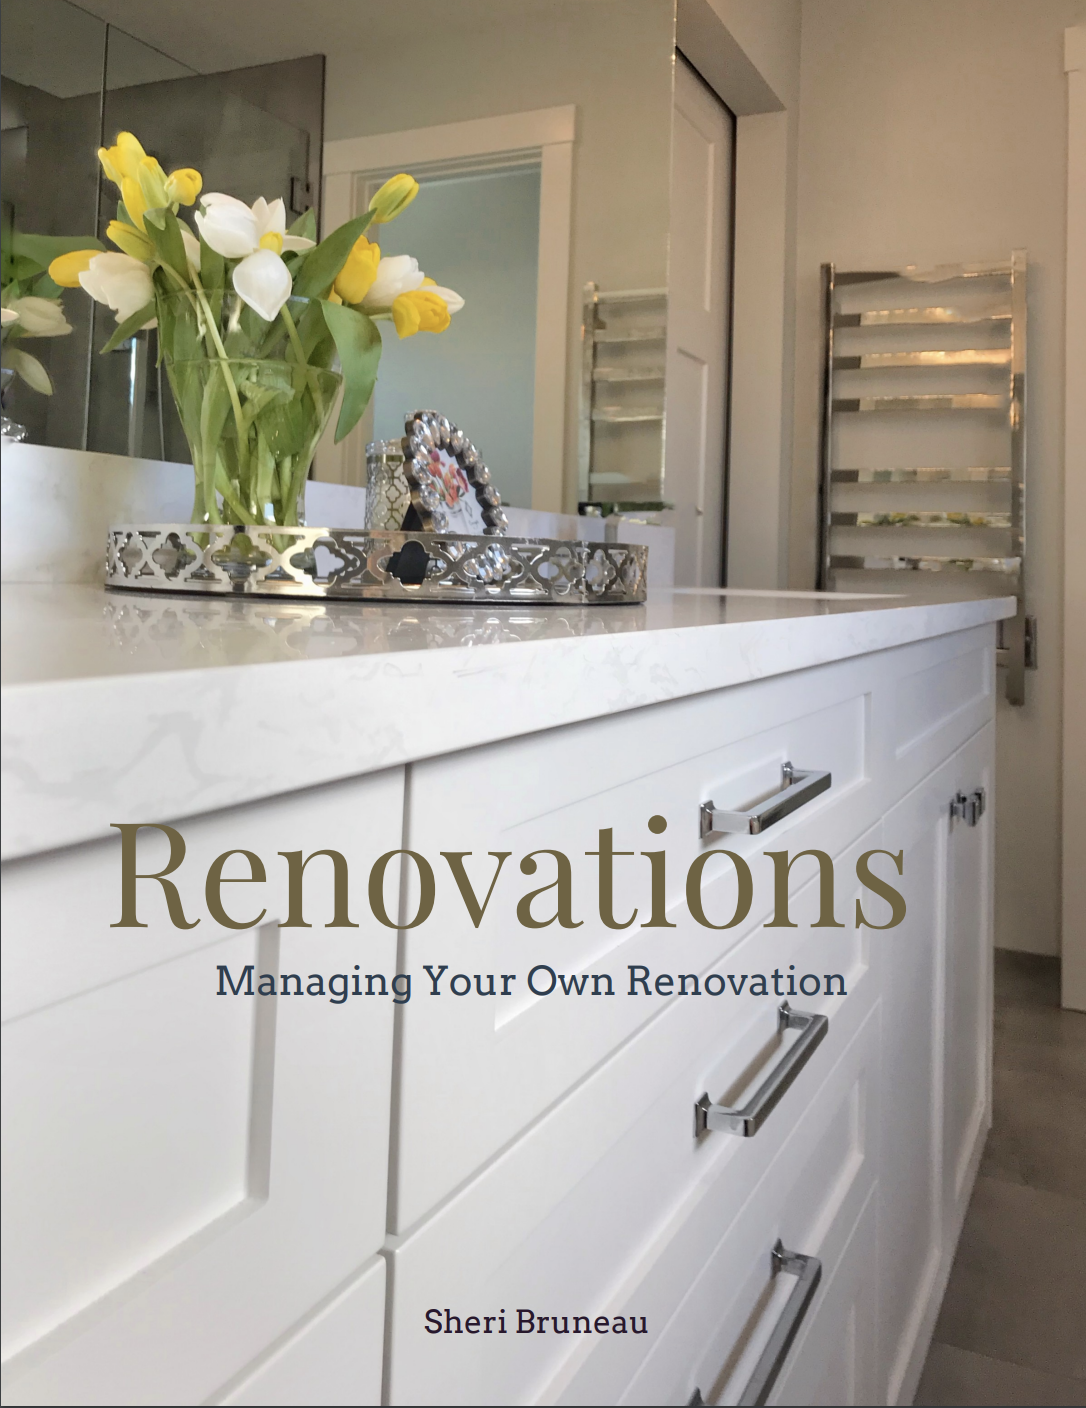 manage your own renovation tp.png